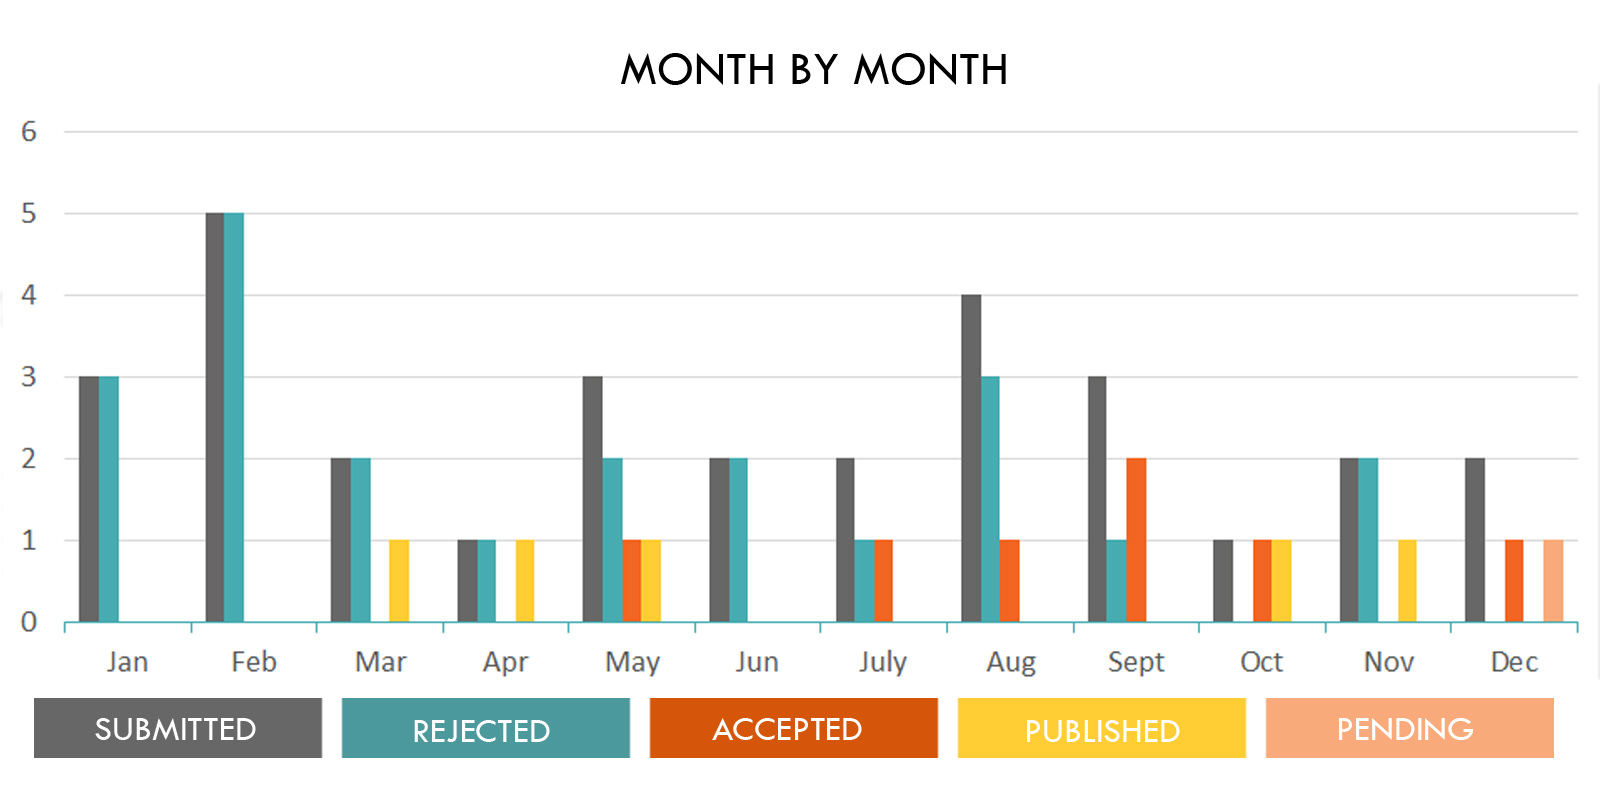 Outcomes by month 2019